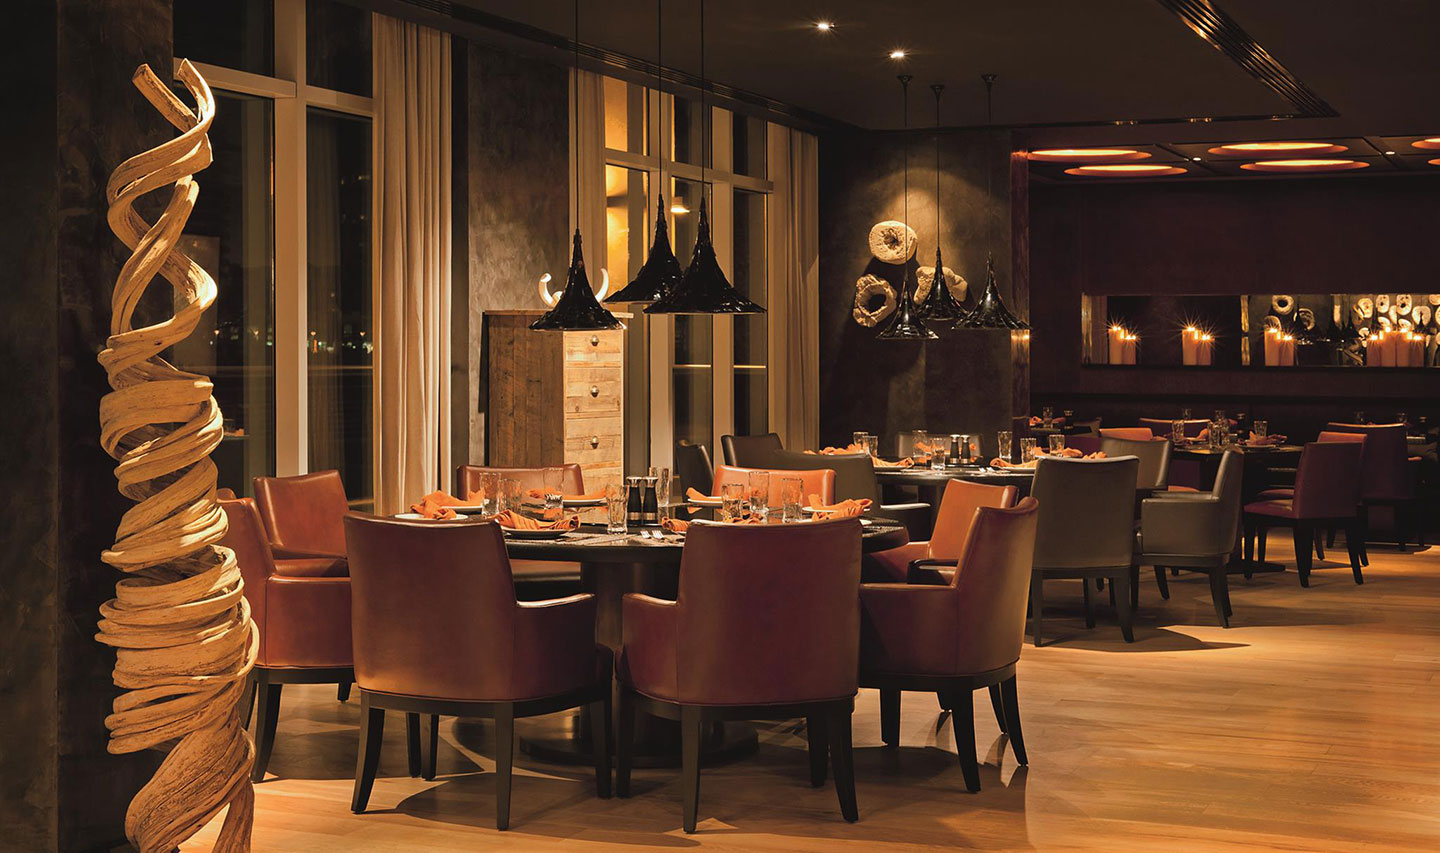 The chocolate-coloured interior of Toro Toro Dubai with round dining tables and soft lighting and an intimate atmosphere